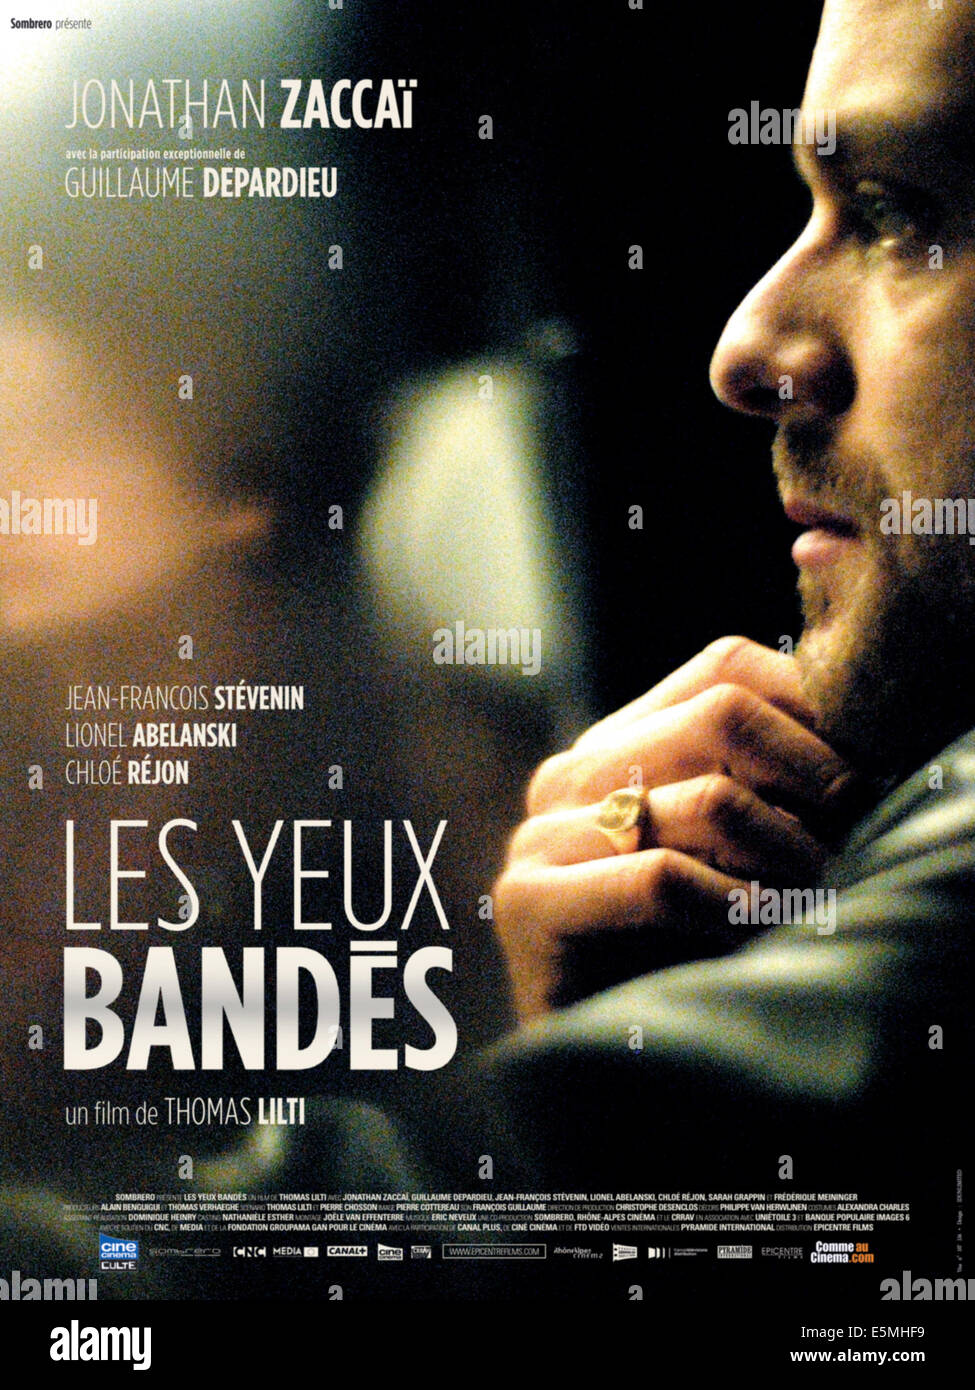 LES YEUX BANDES, French poster art, Jonathan Zaccai, 2008. ©Epicentre Films